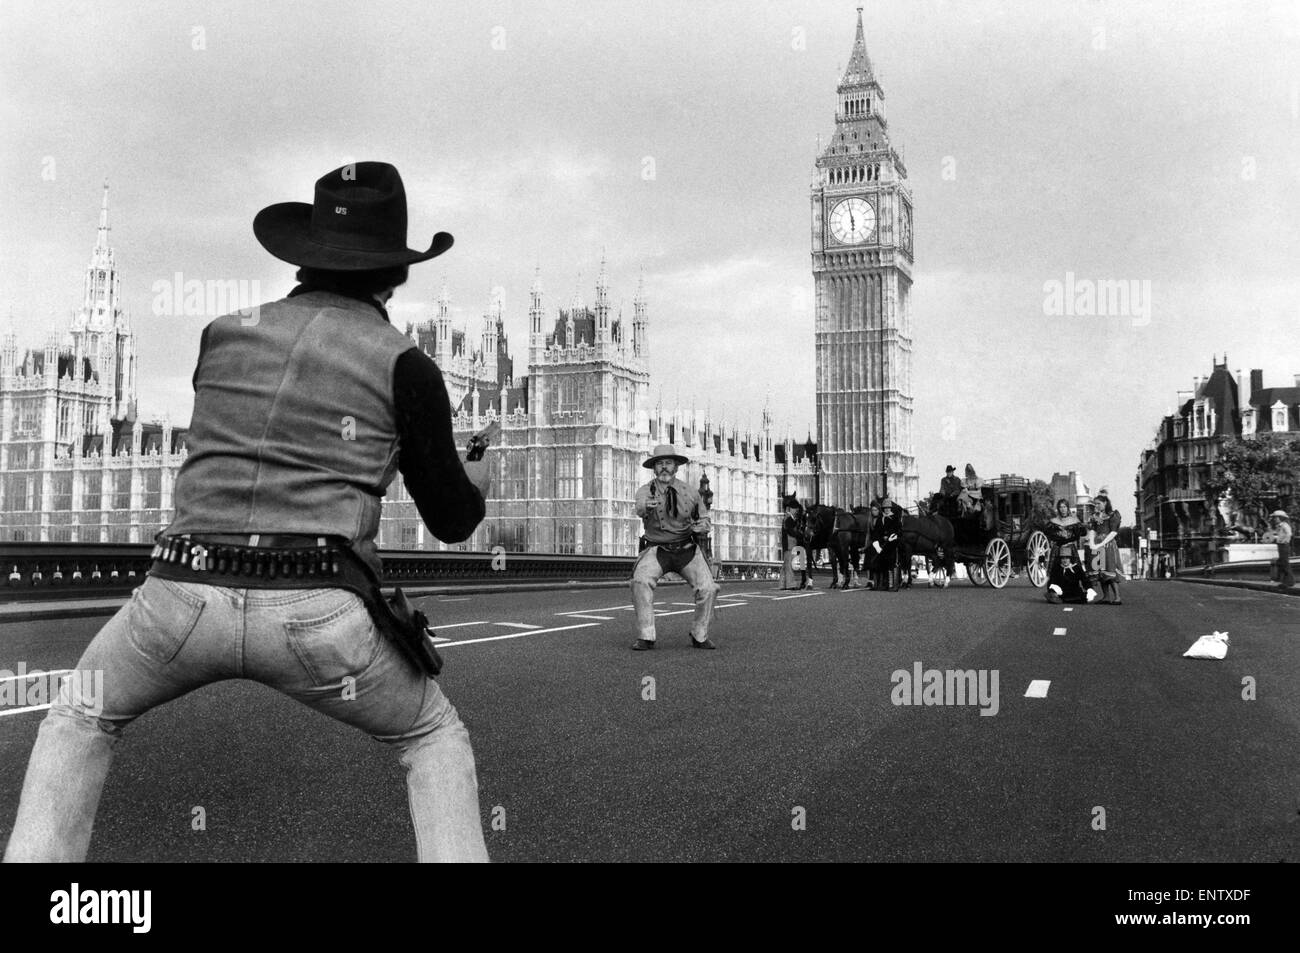 High Dawn in the West (Minster): This shoot took place on WestMinster Bridgre this morning at Dawn. dozen cowboys - Stock Image